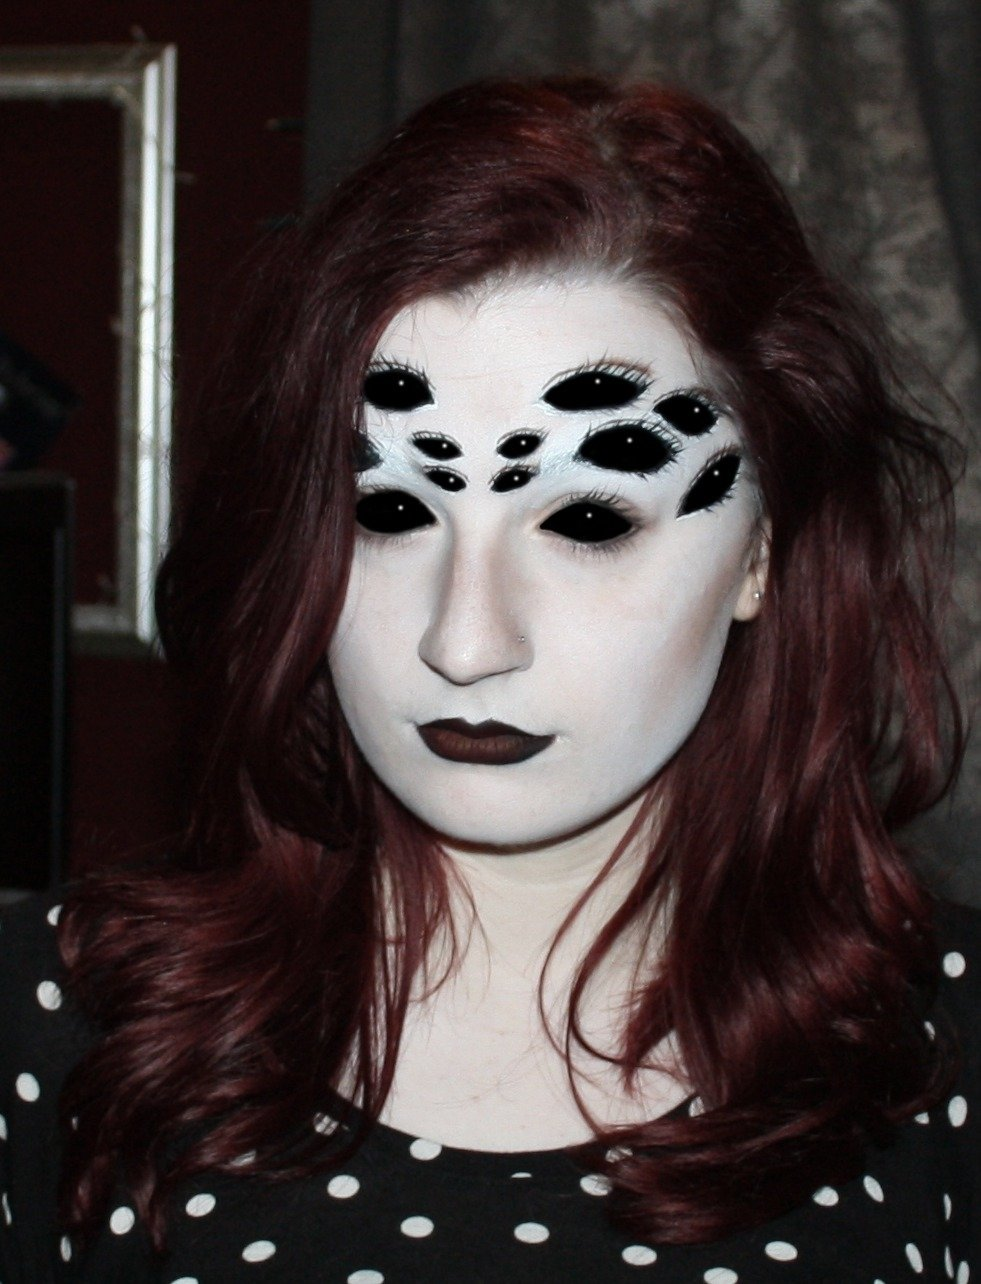 10 Best Cool Halloween Face Paint Ideas creepy spider eyes make up design perfect for halloween 3 2021